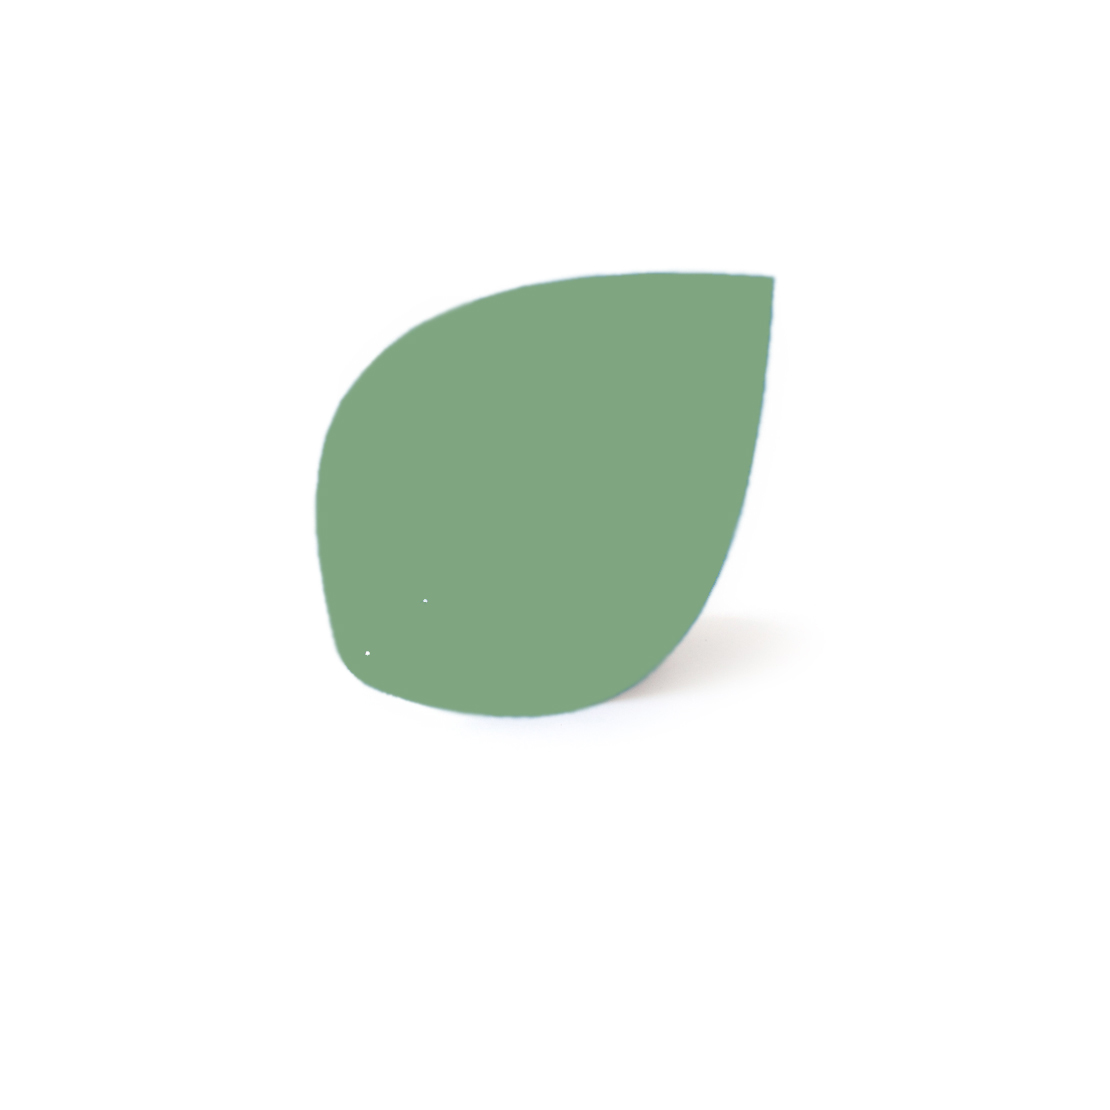 Almond green leaf, Virvoltan thin lacquered blade